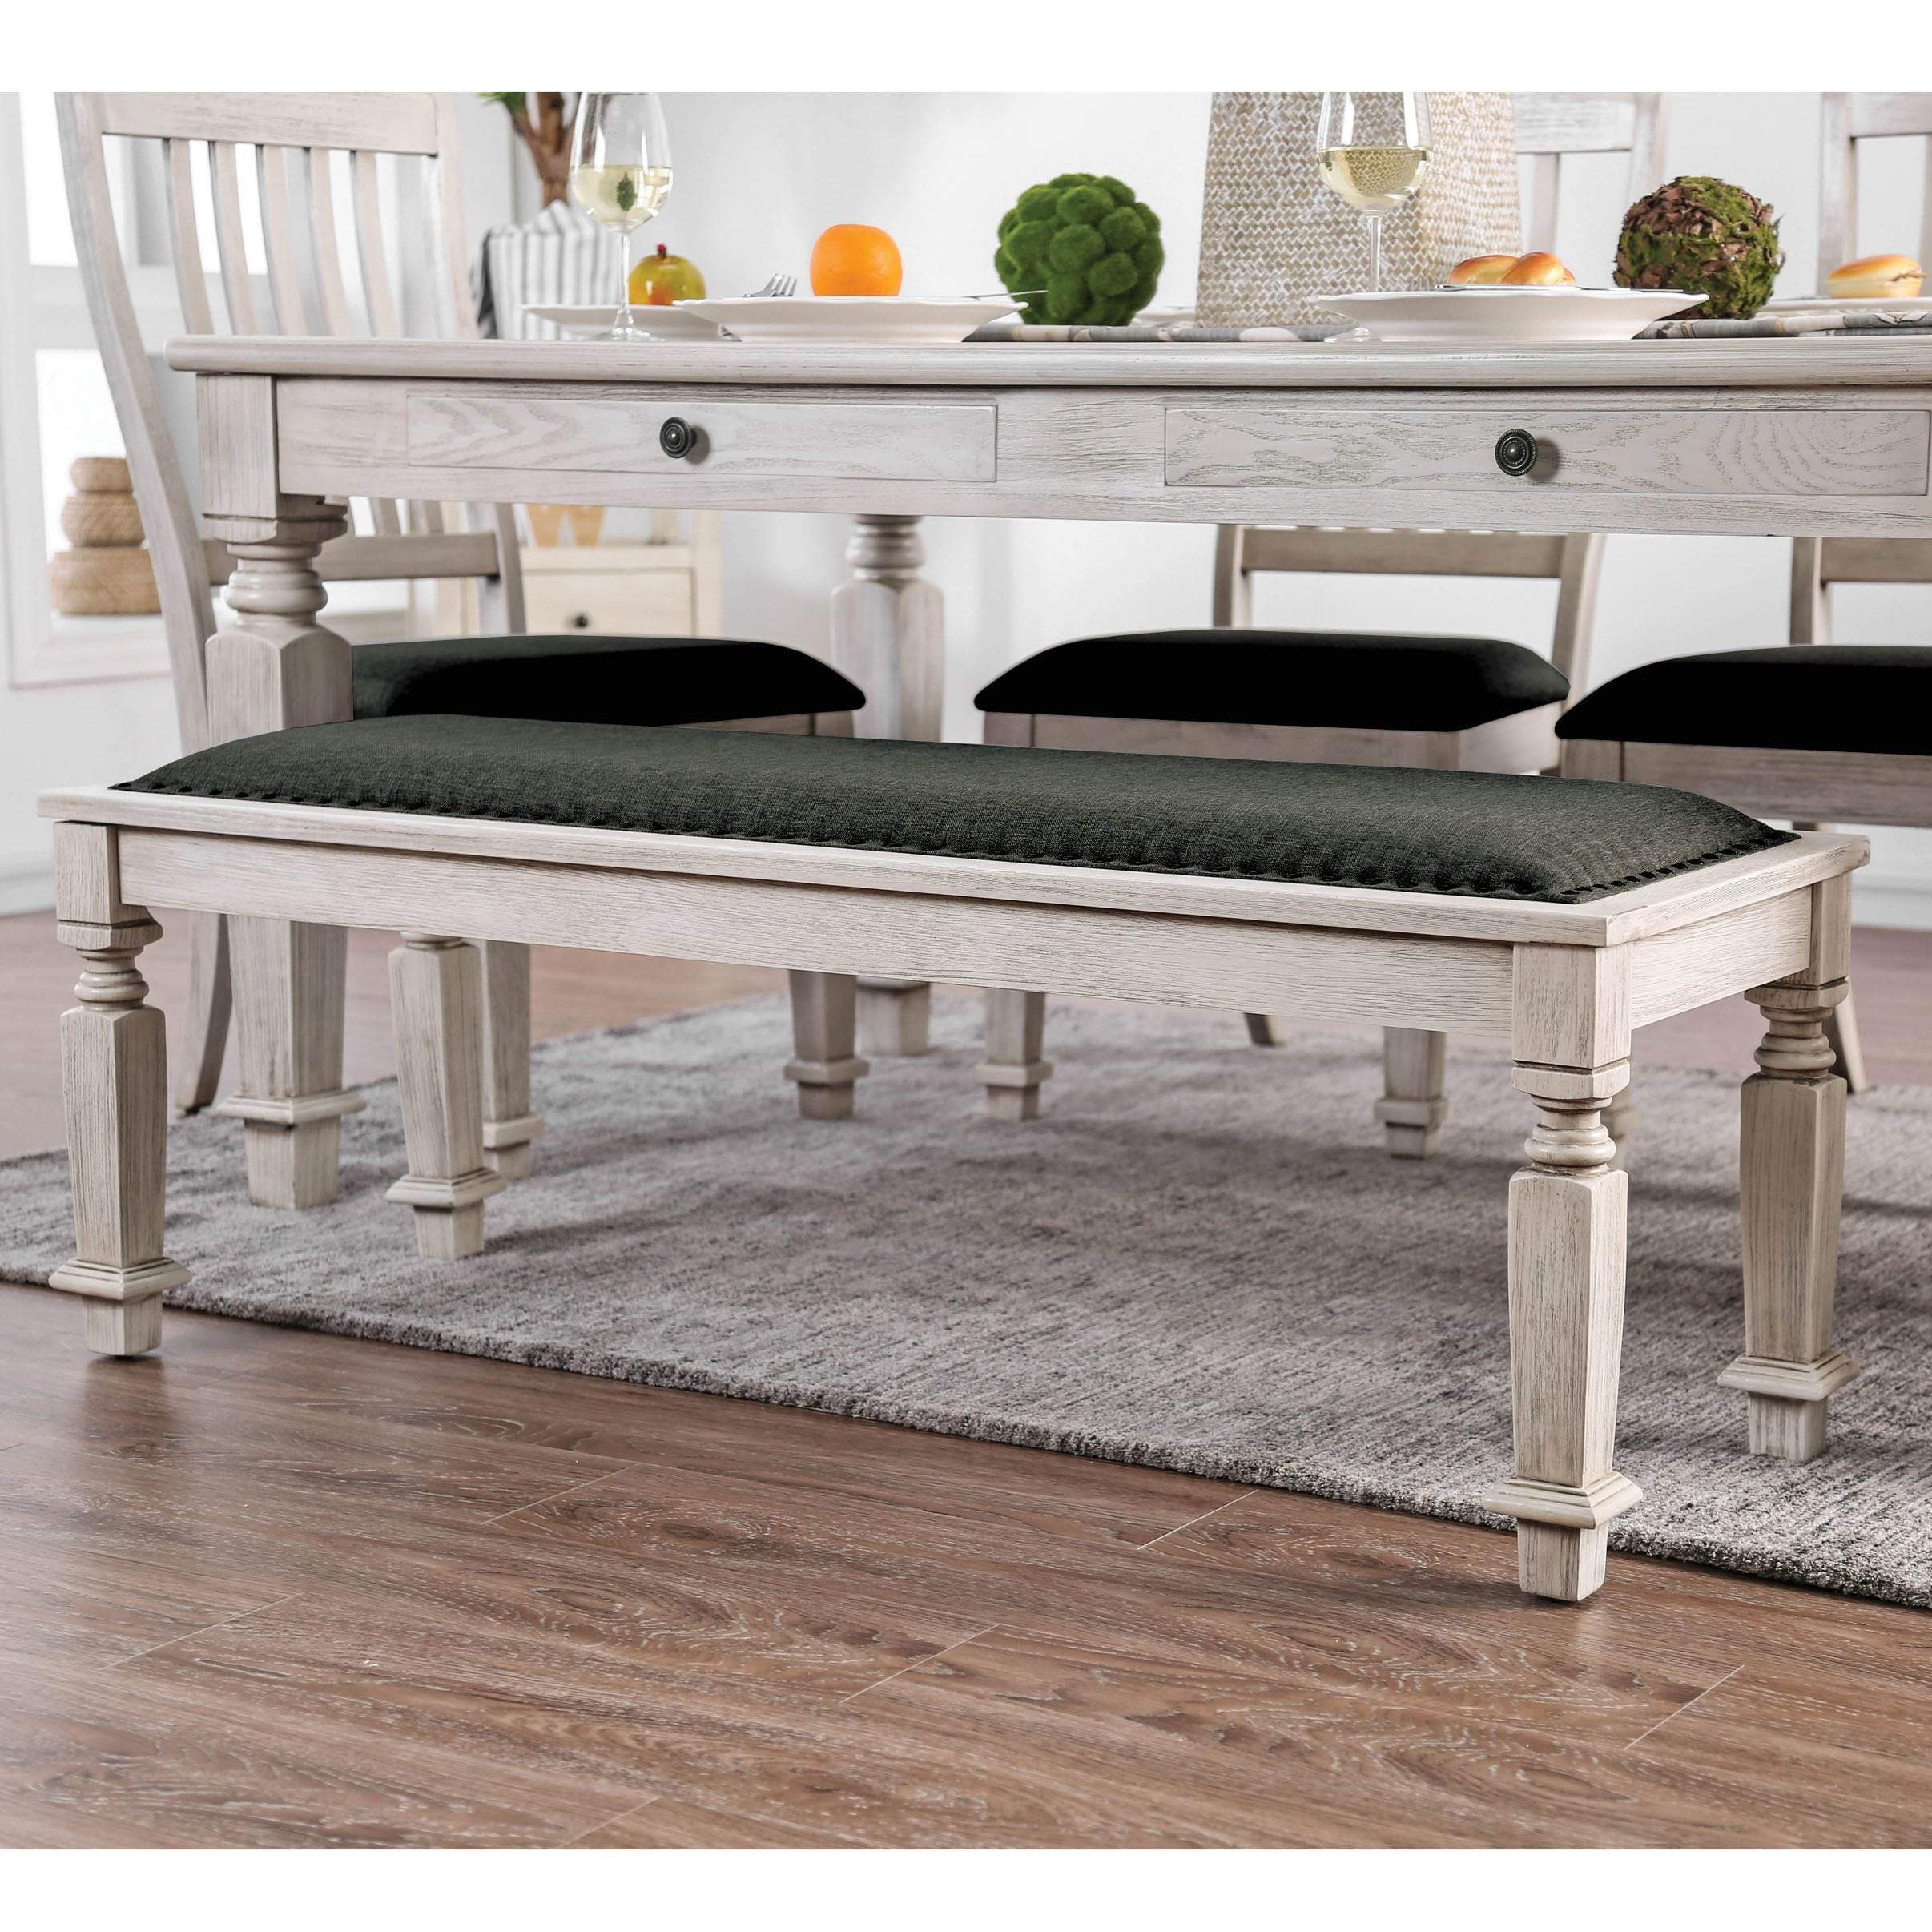 Furniture Of America Hish Rustic White Fabric Upholstered Dining Bench On Sale Overstock 21475358